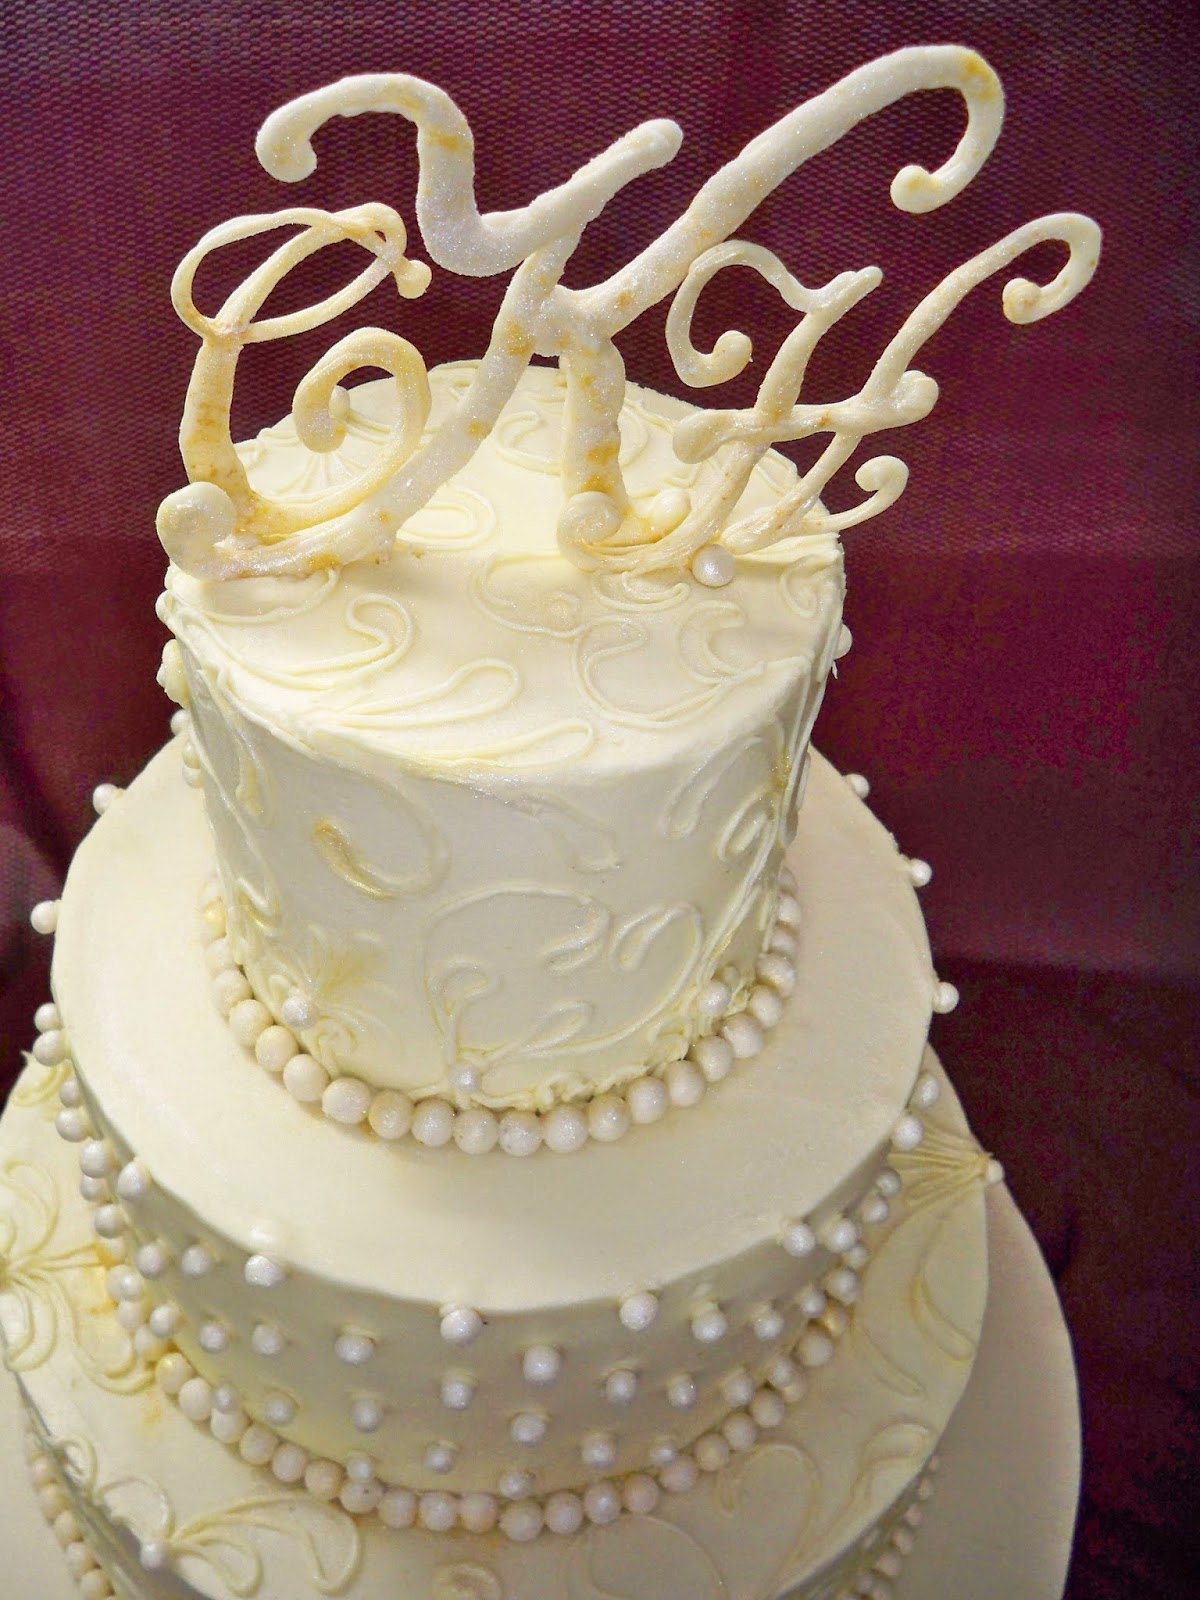 white chocolate ganache covered wedding cake white chocoalte ganache lace wedding cake elisabeth s 27250